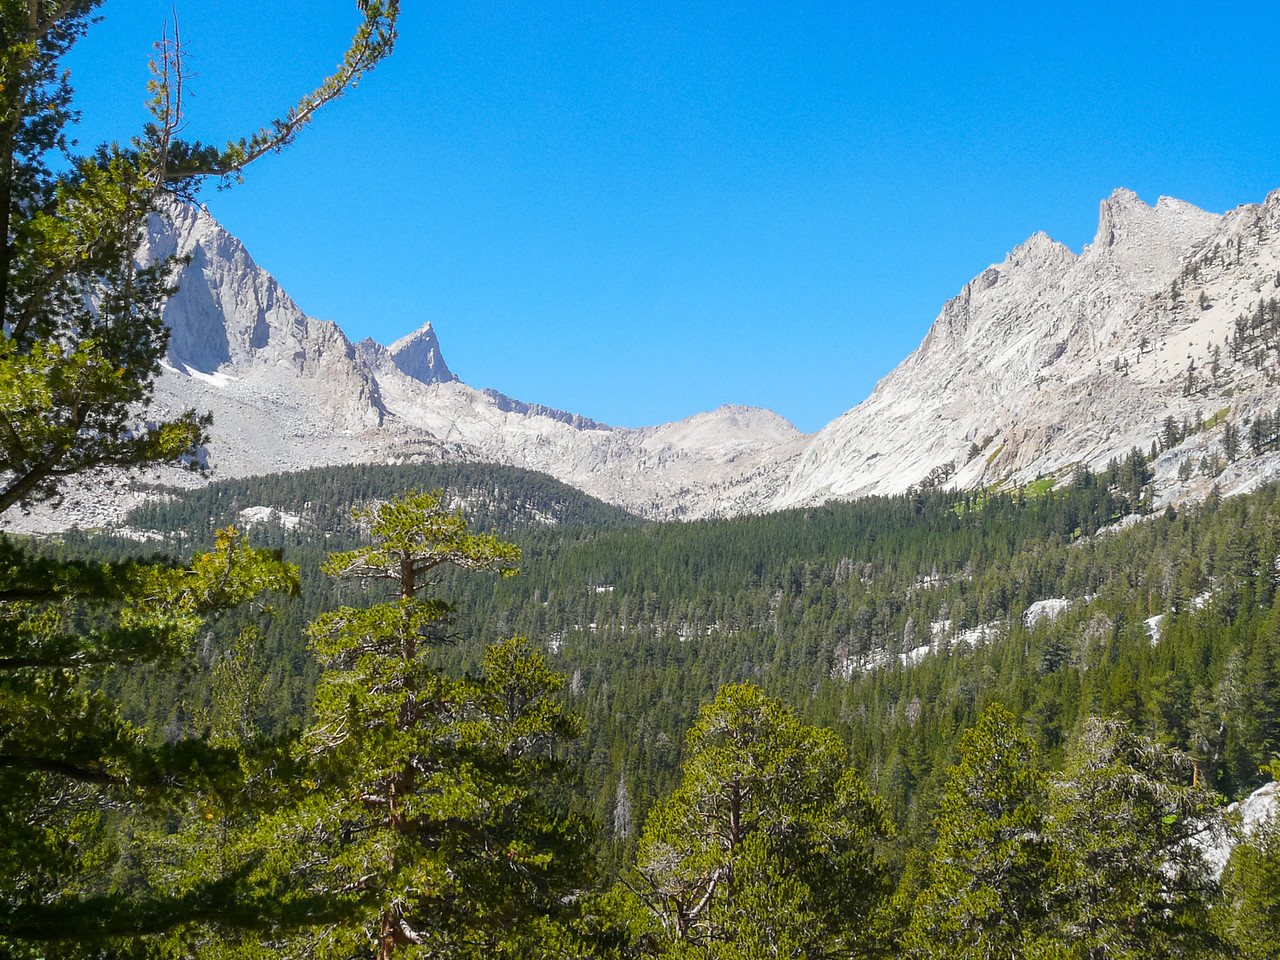 A view up Lost Canyon, with Sawtooth Peak just sticking up.